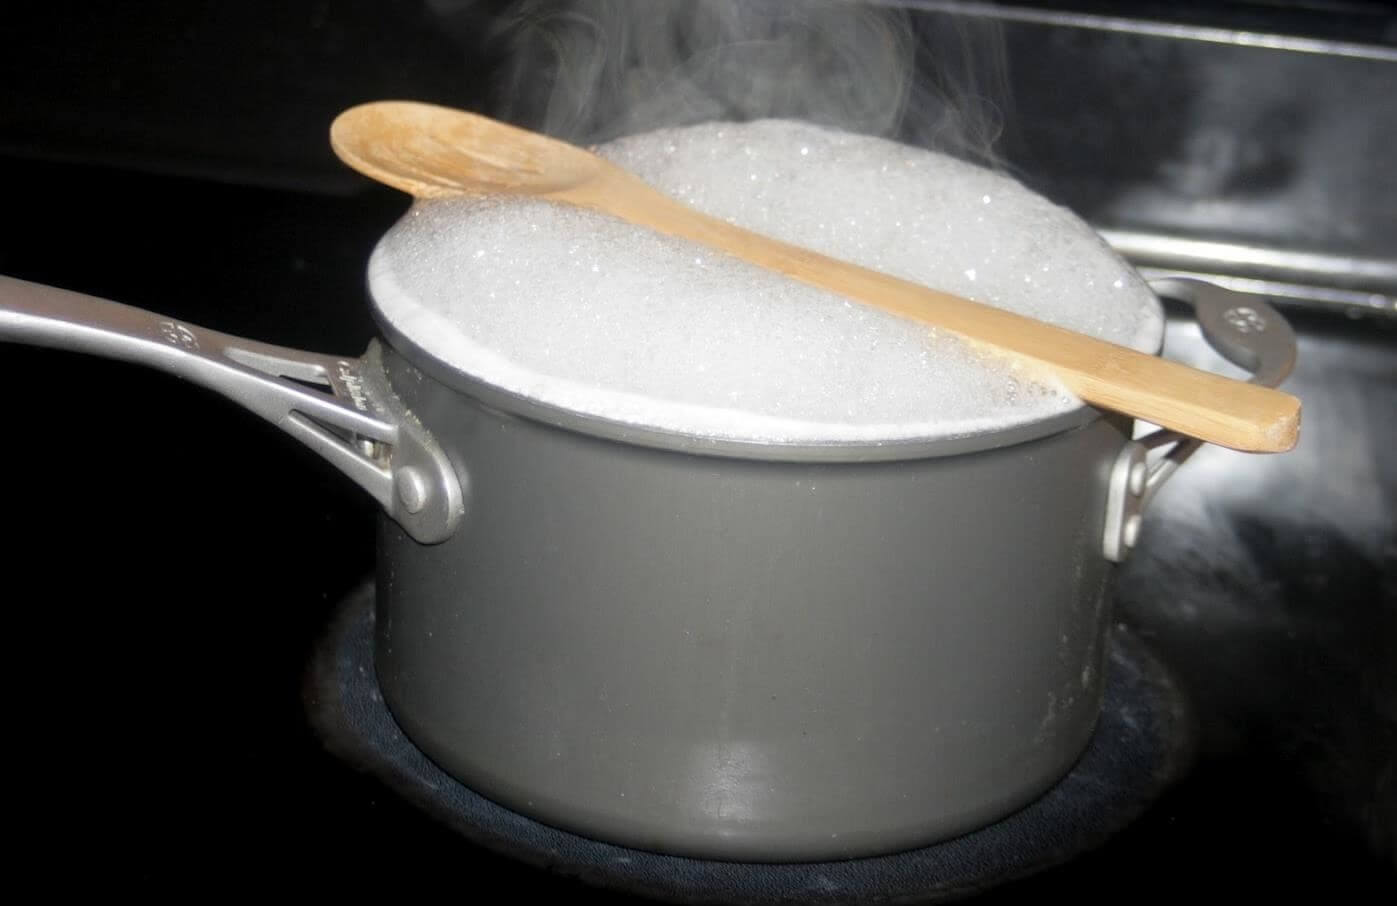 The simple act of putting a wooden spoon over the pot will keep it from boiling over